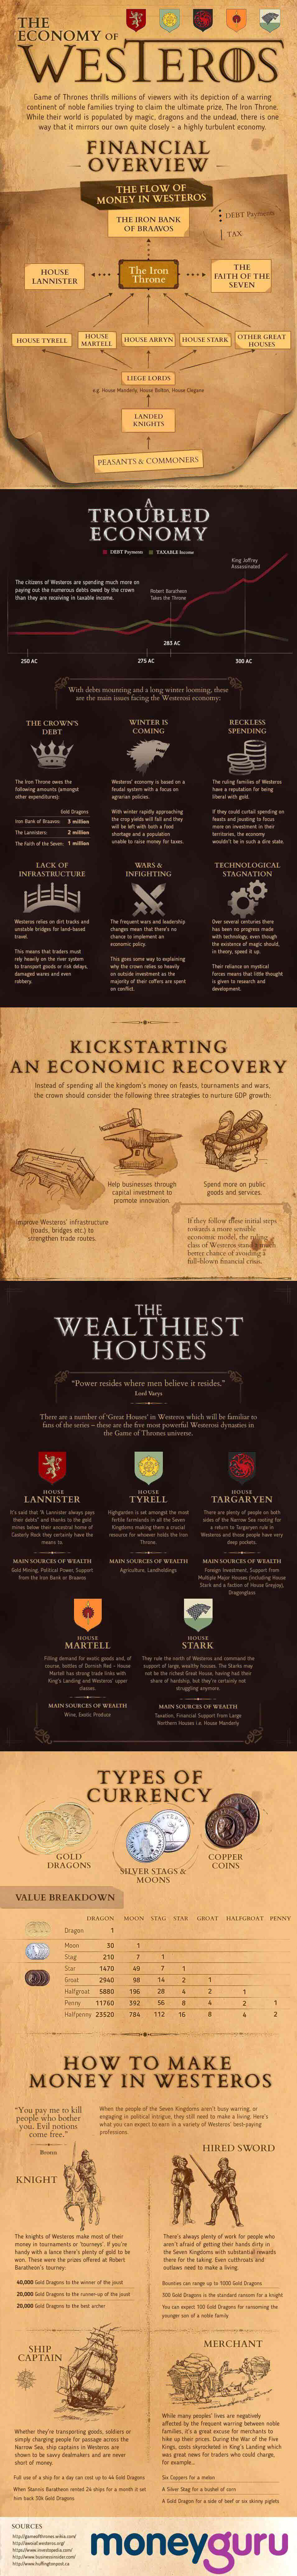 The Economy of Westeros image